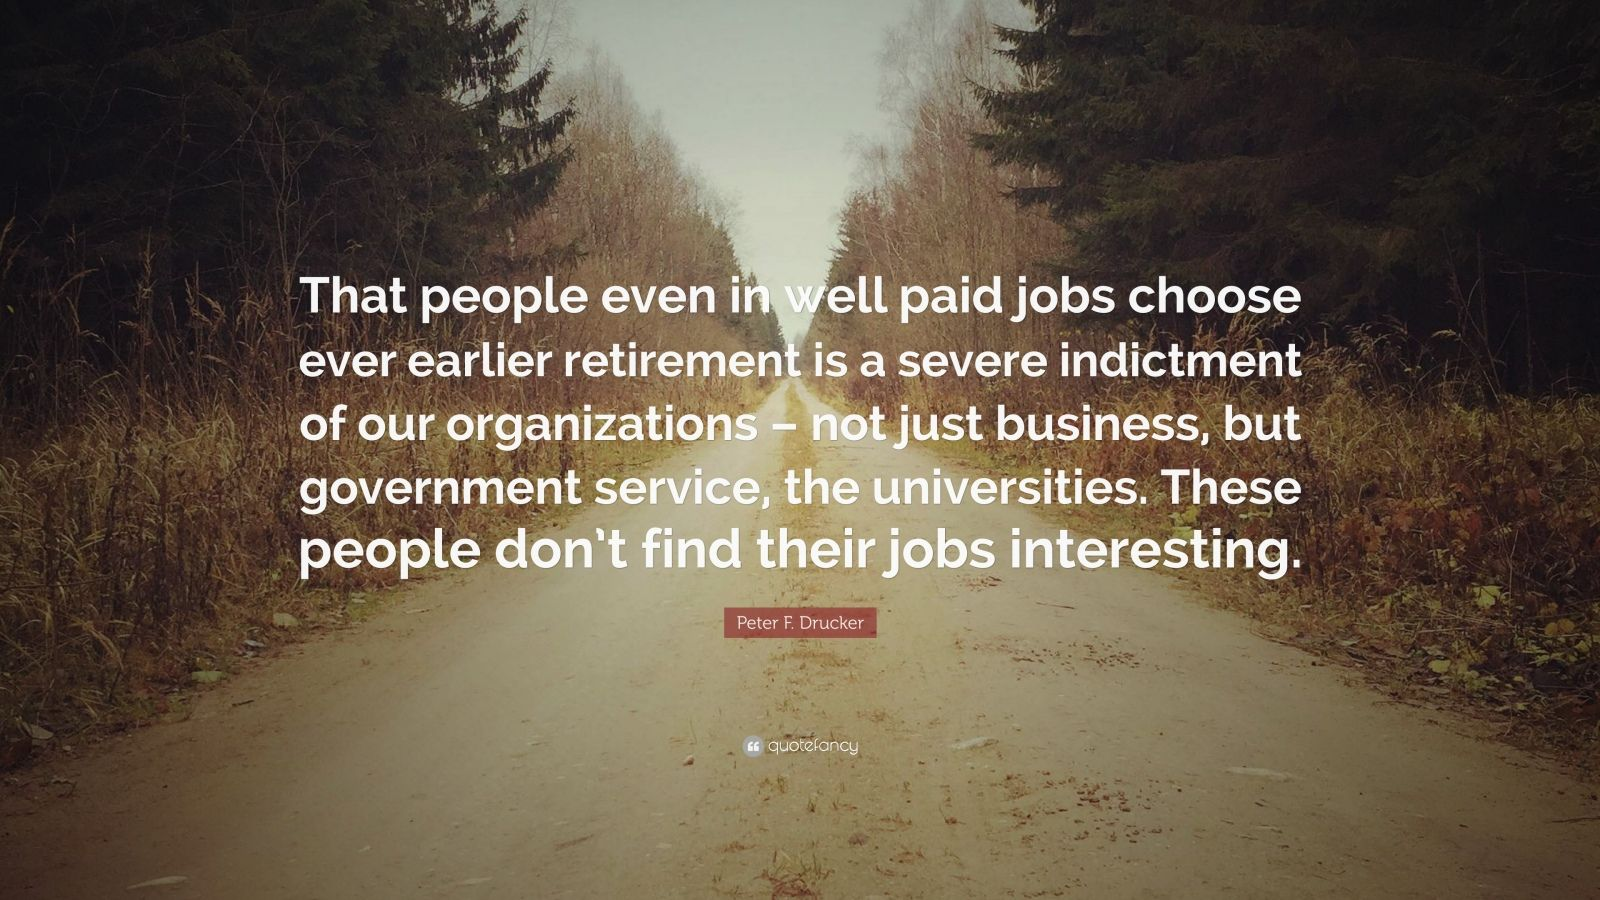 """Peter F. Drucker Quote: """"That people even in well paid jobs choose ever earlier retirement is a severe indictment of our organizations – not just business, but government service, the universities. These people don't find their jobs interesting."""""""